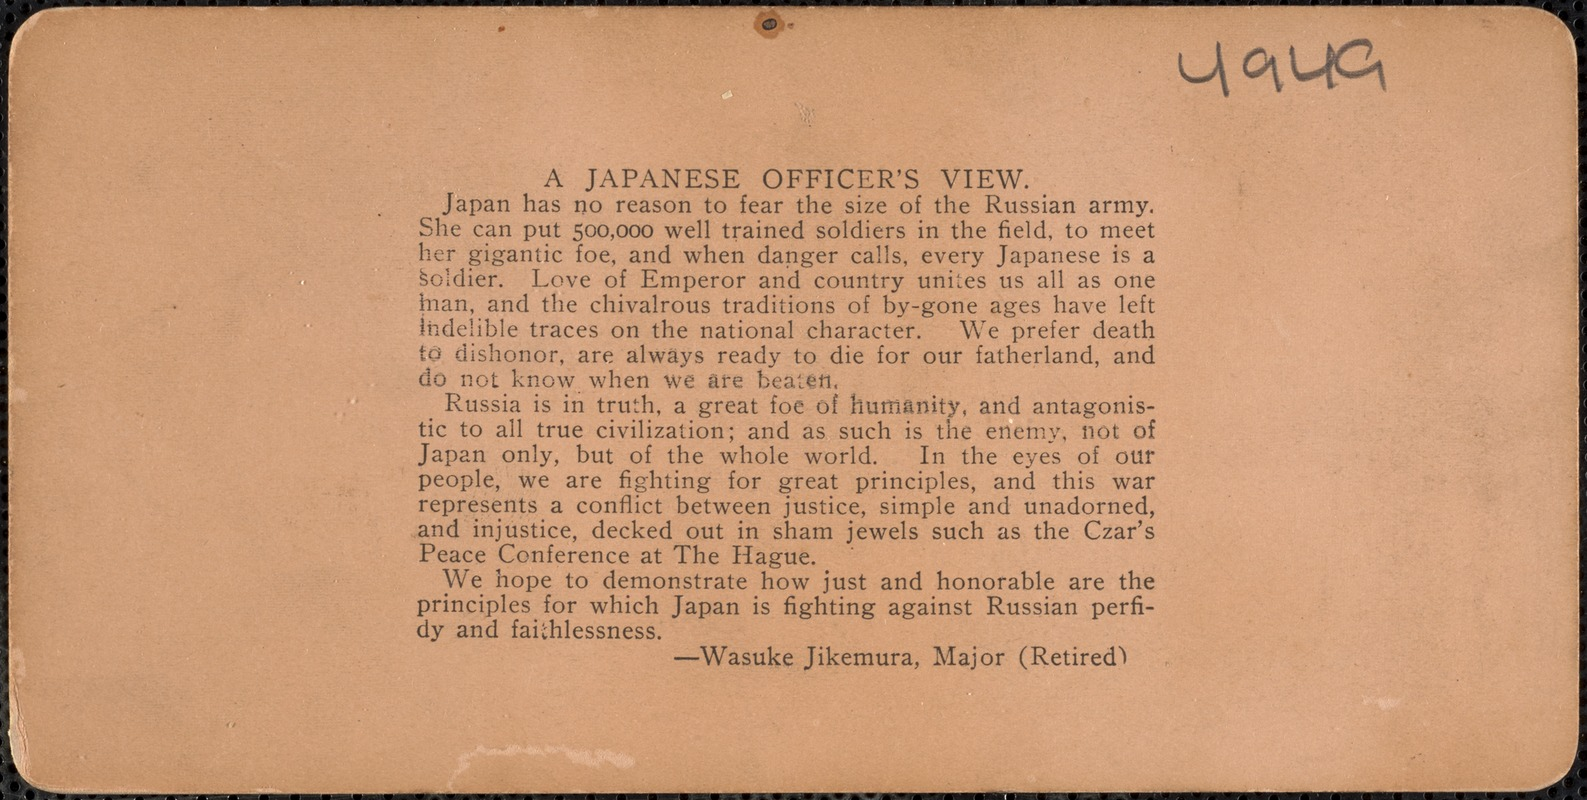 Falling into line - troops of the Imperial Army, Japan